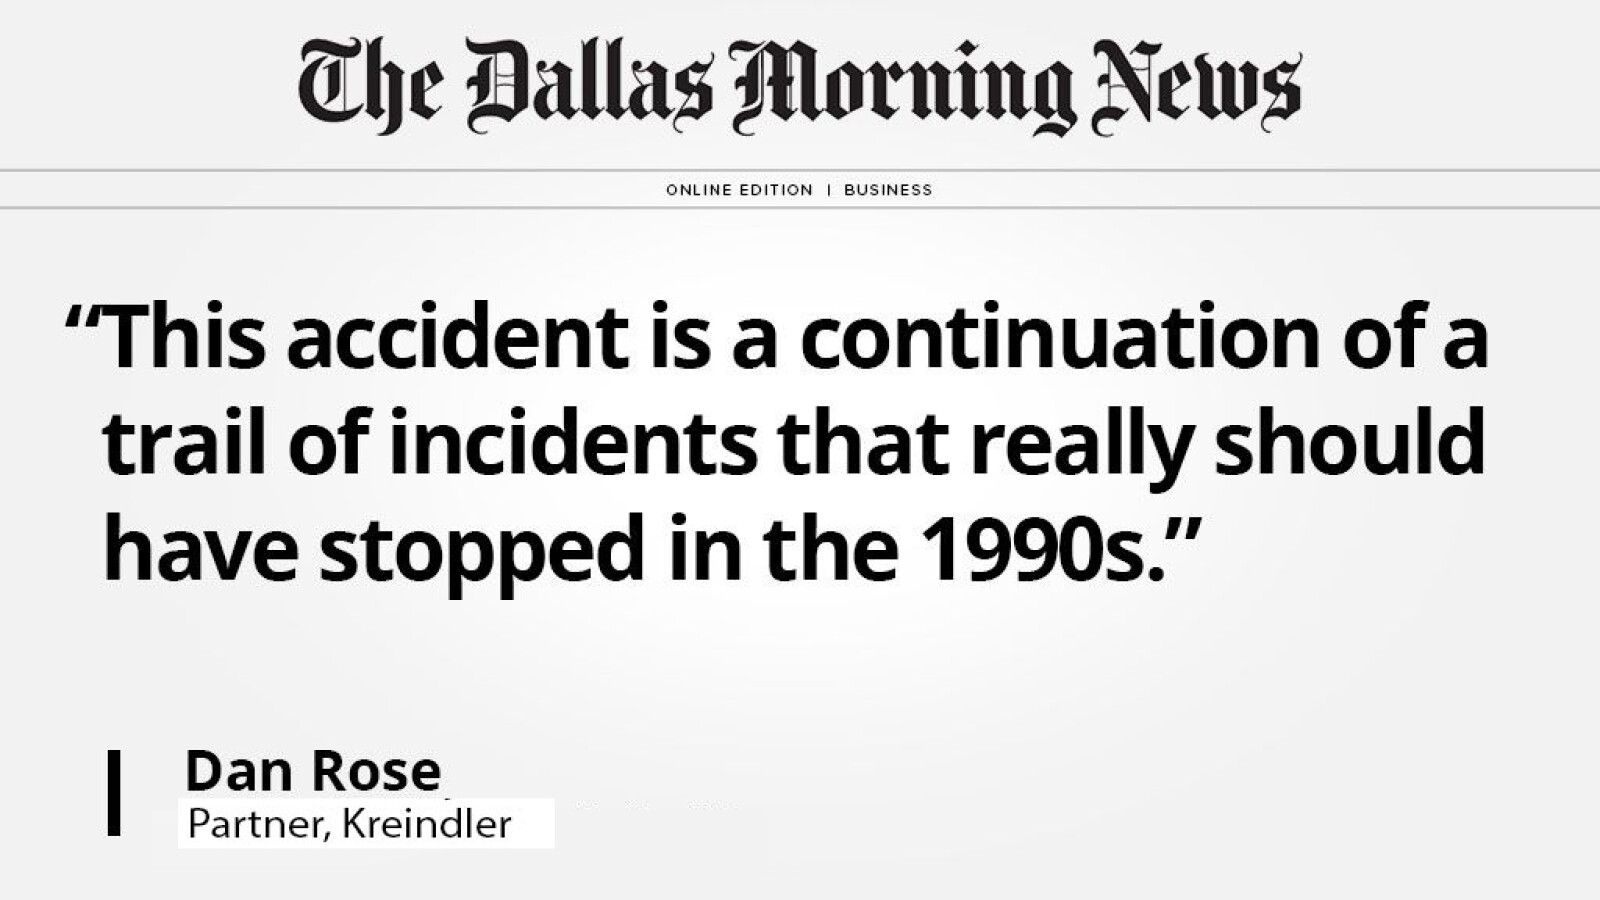 Kreindler partner Dan Rose talks about the legacy of accidents leading up to Southwest Flight 1380